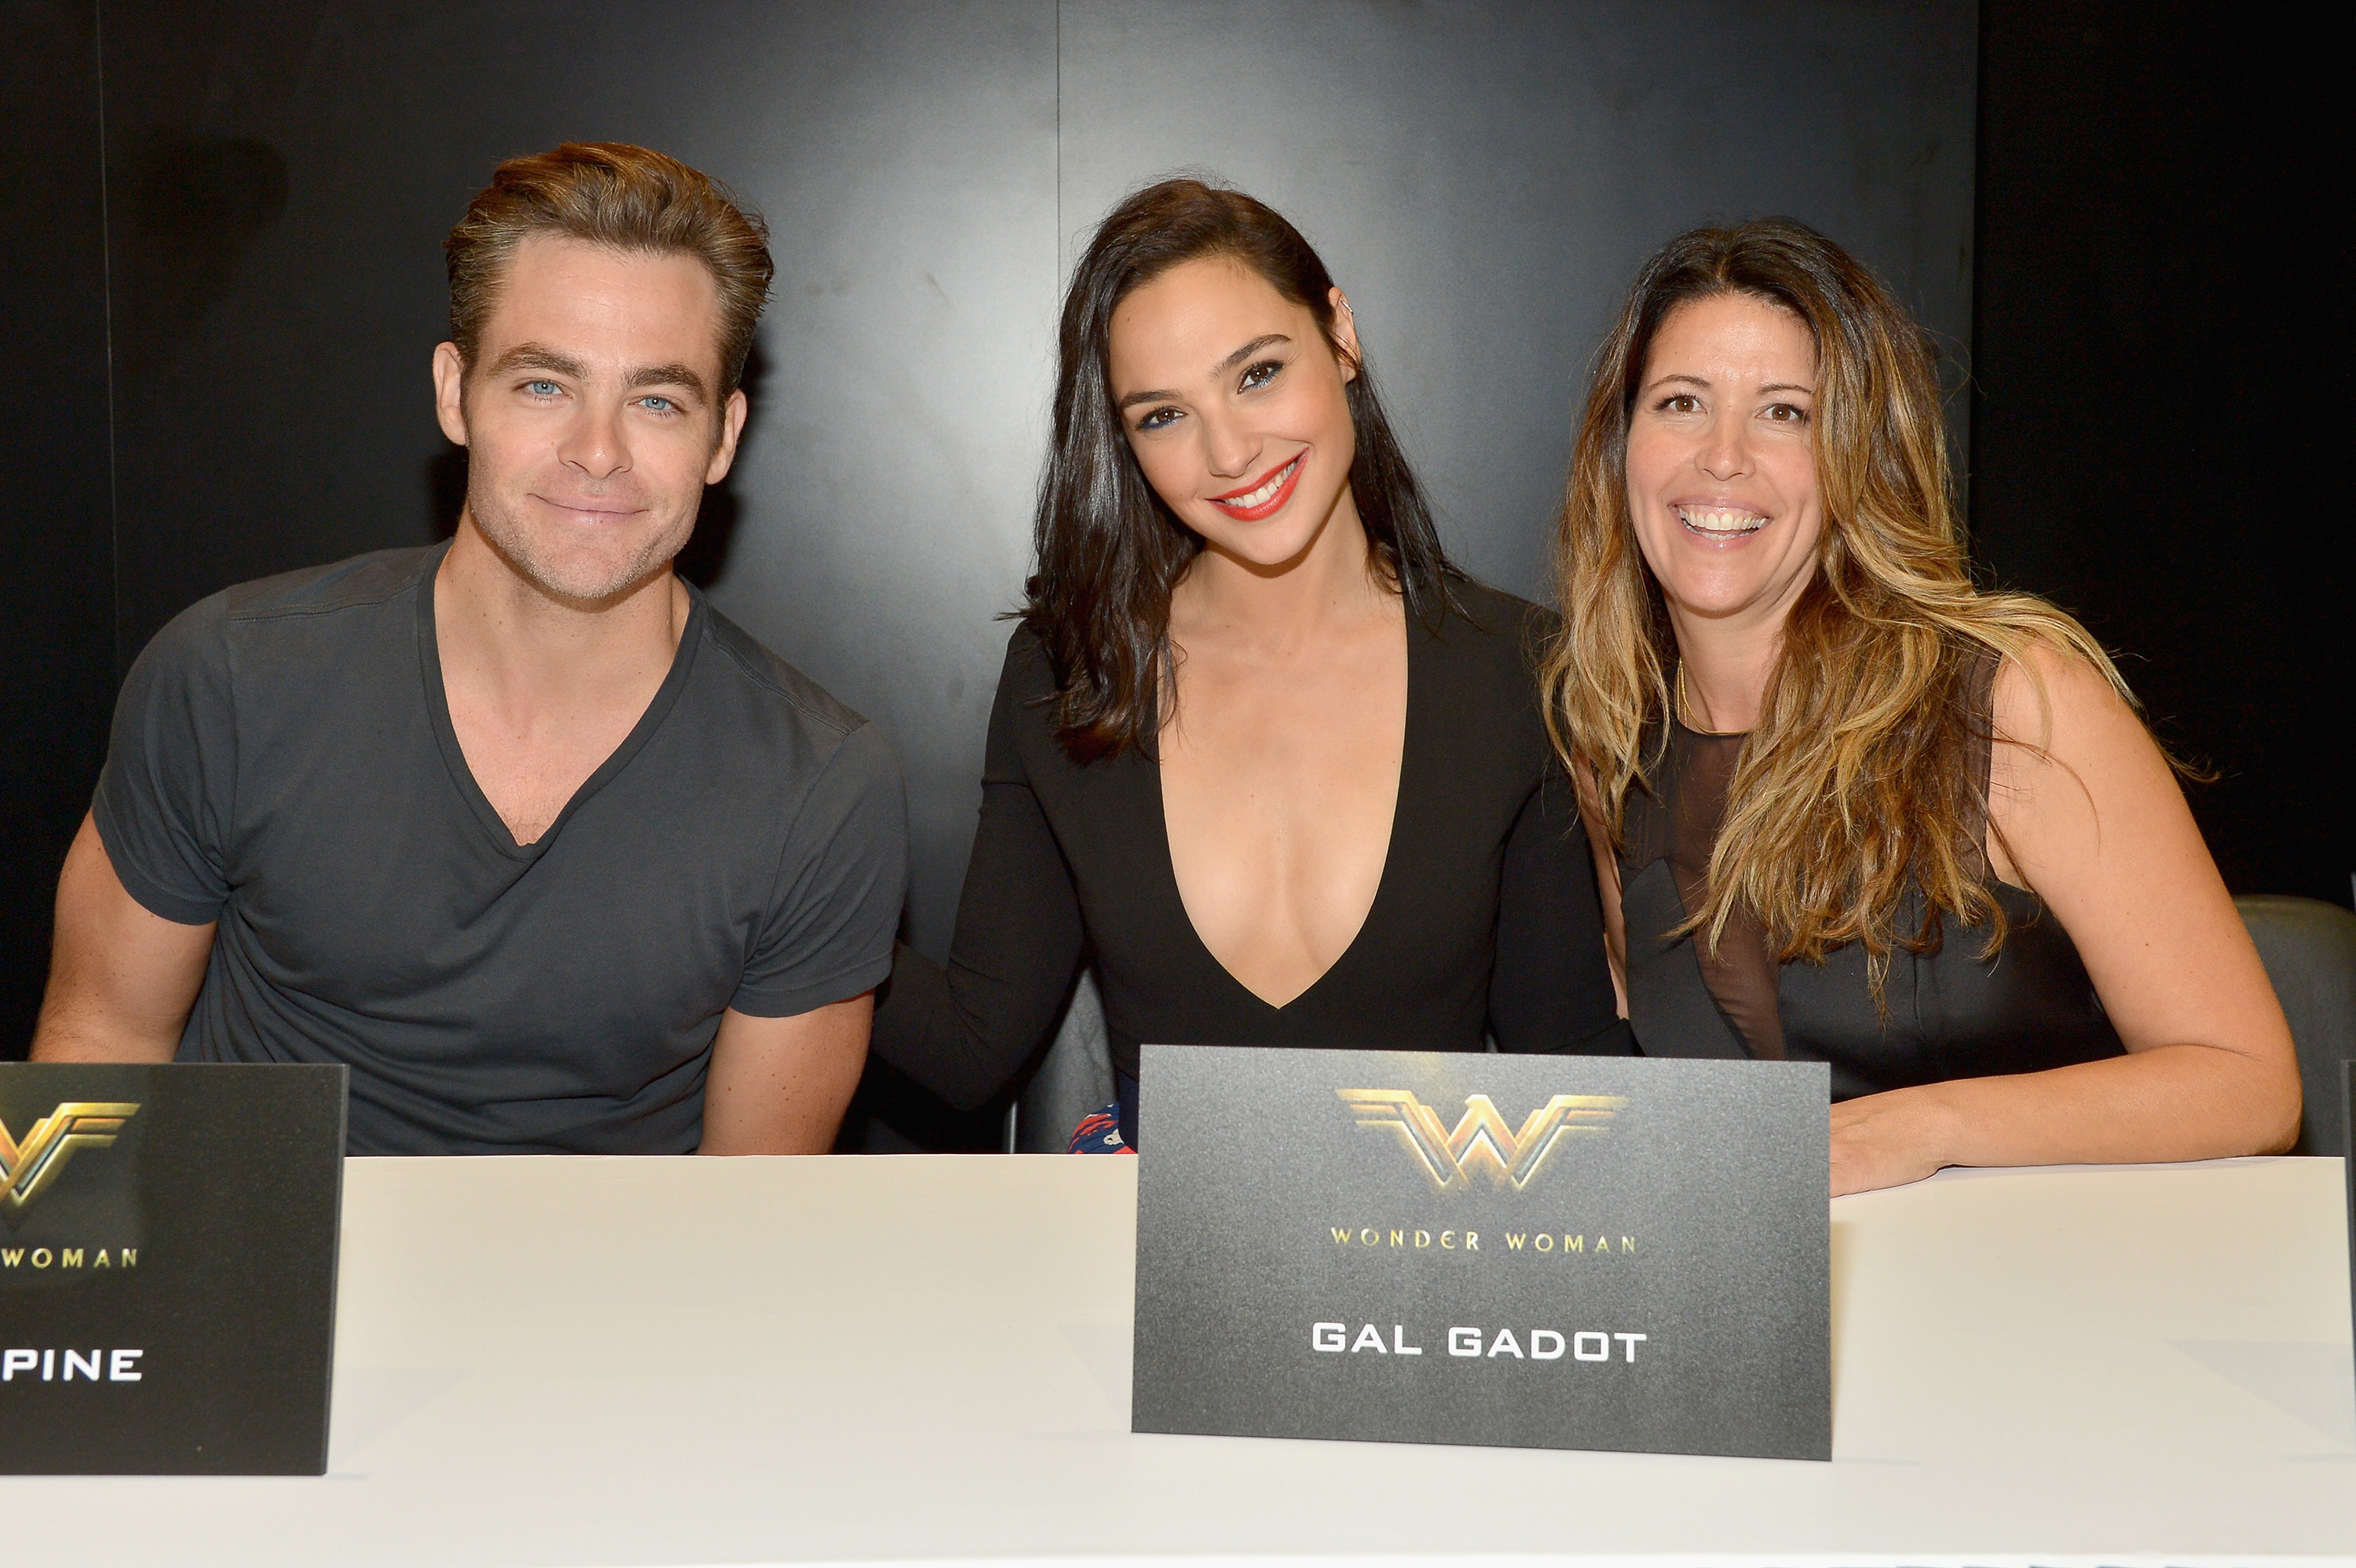 SAN DIEGO, CA - JULY 23: (L-R) Actors Chris Pine, Gal Dagot and director Patty Jenkins from the 2017 feature film Wonder Woman attend a cast signing autograph session for fans in DC's 2016 San Diego Comic-Con booth at San Diego Convention Center on July 23, 2016 in San Diego, California. (Photo by Charley Gallay/Getty Images for DC Entertainment) *** Local Caption *** Patty Jenkins;Chris Pine;Gal Dagot